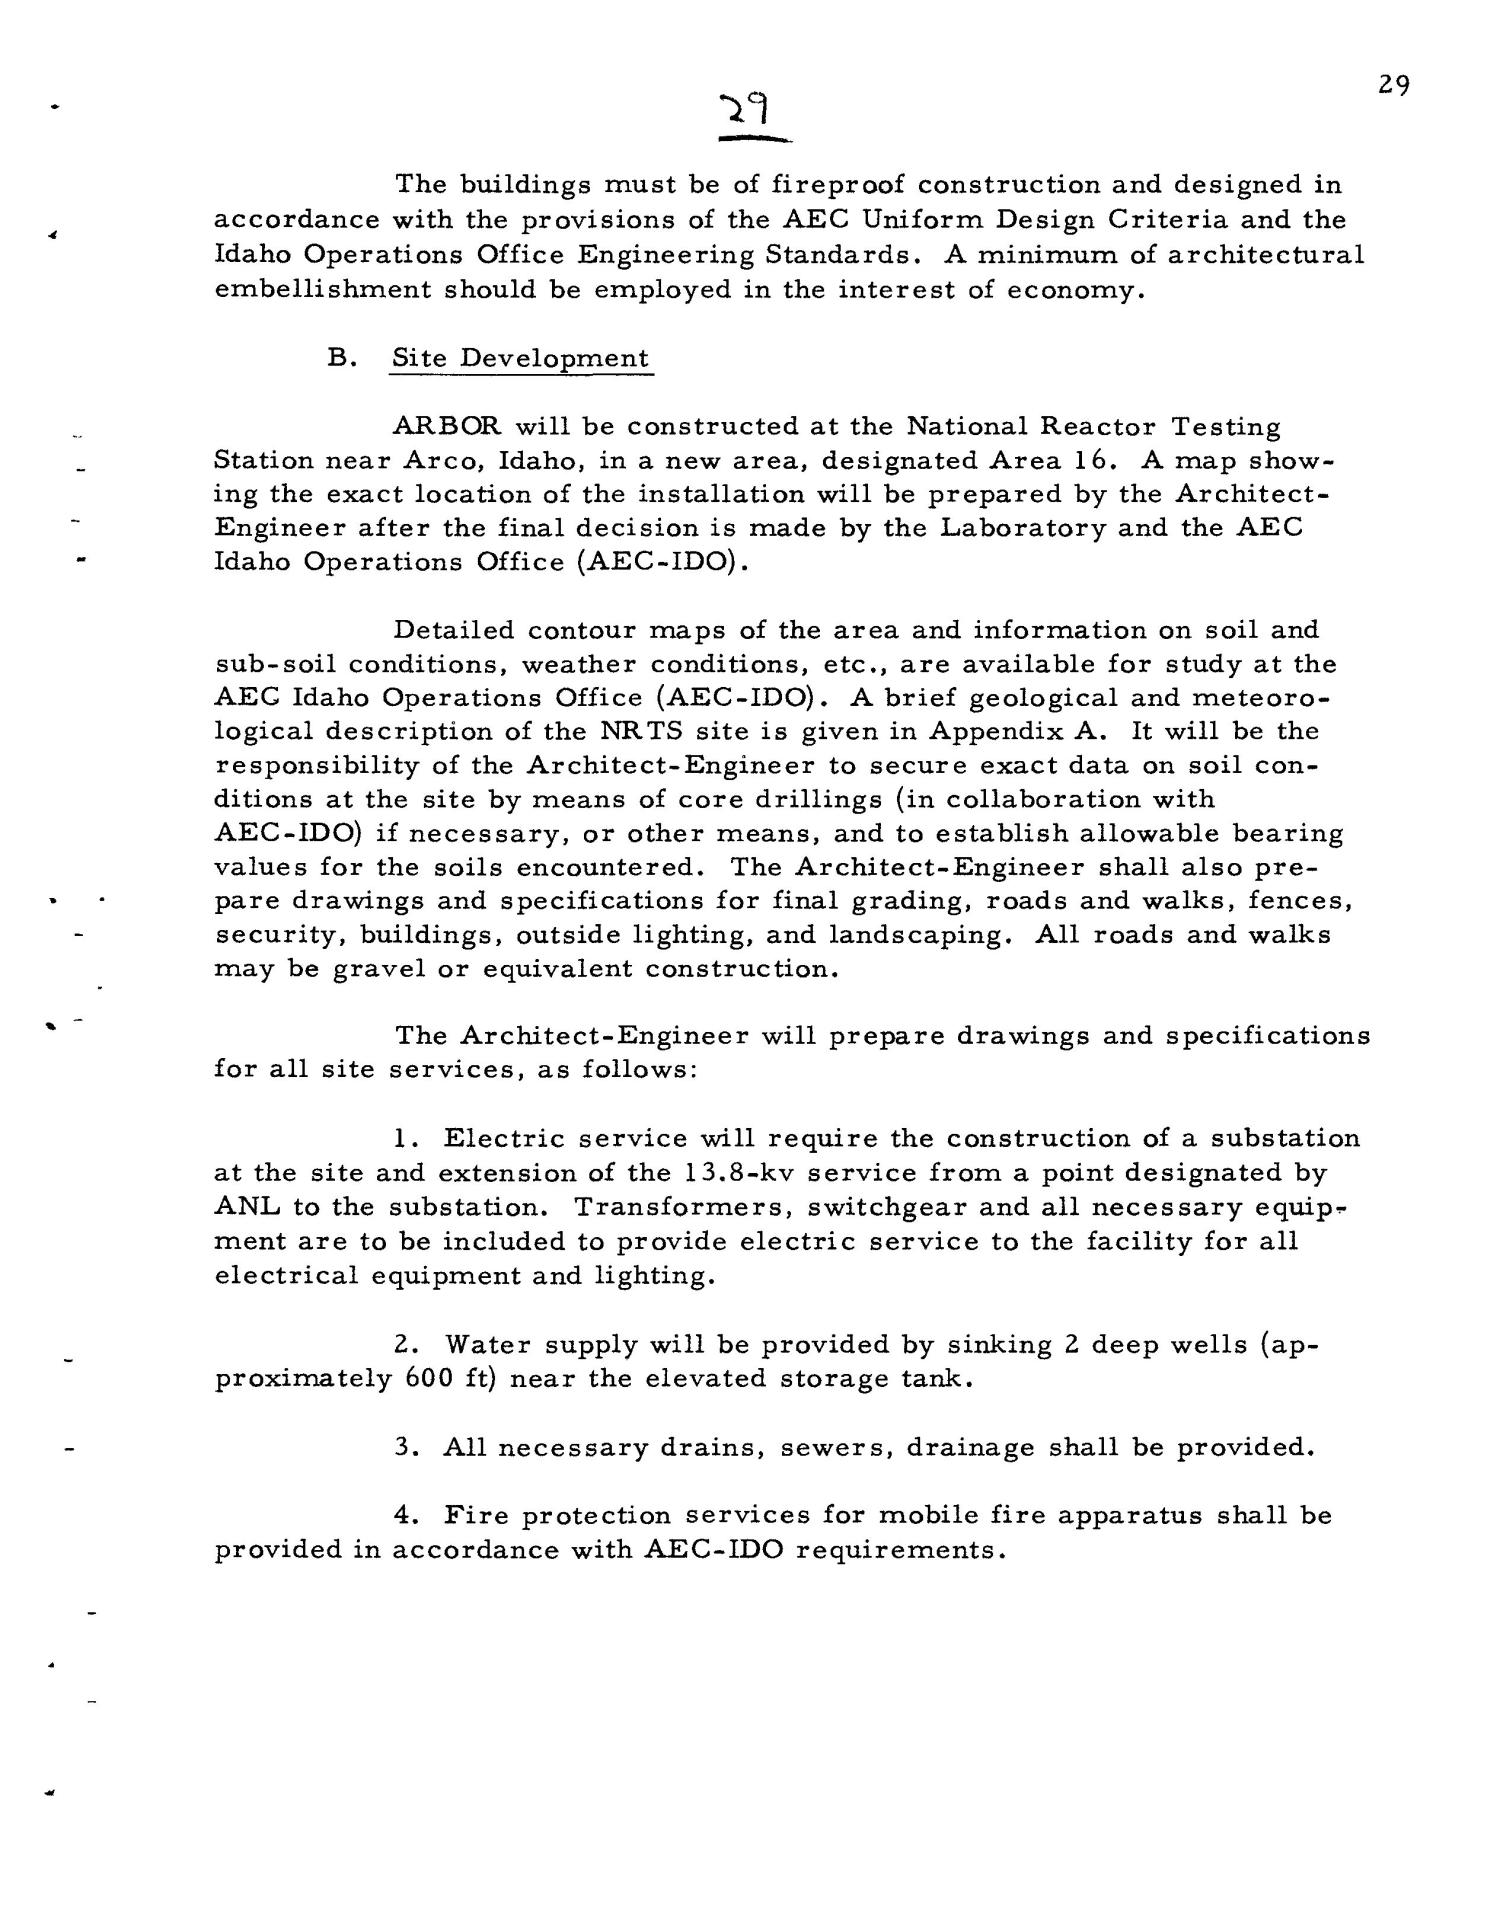 PRELIMINARY DESIGN REQUIREMENTS ARGONNE BOILING REACTOR (ARBOR) FACILITY. Revision I                                                                                                      [Sequence #]: 31 of 161